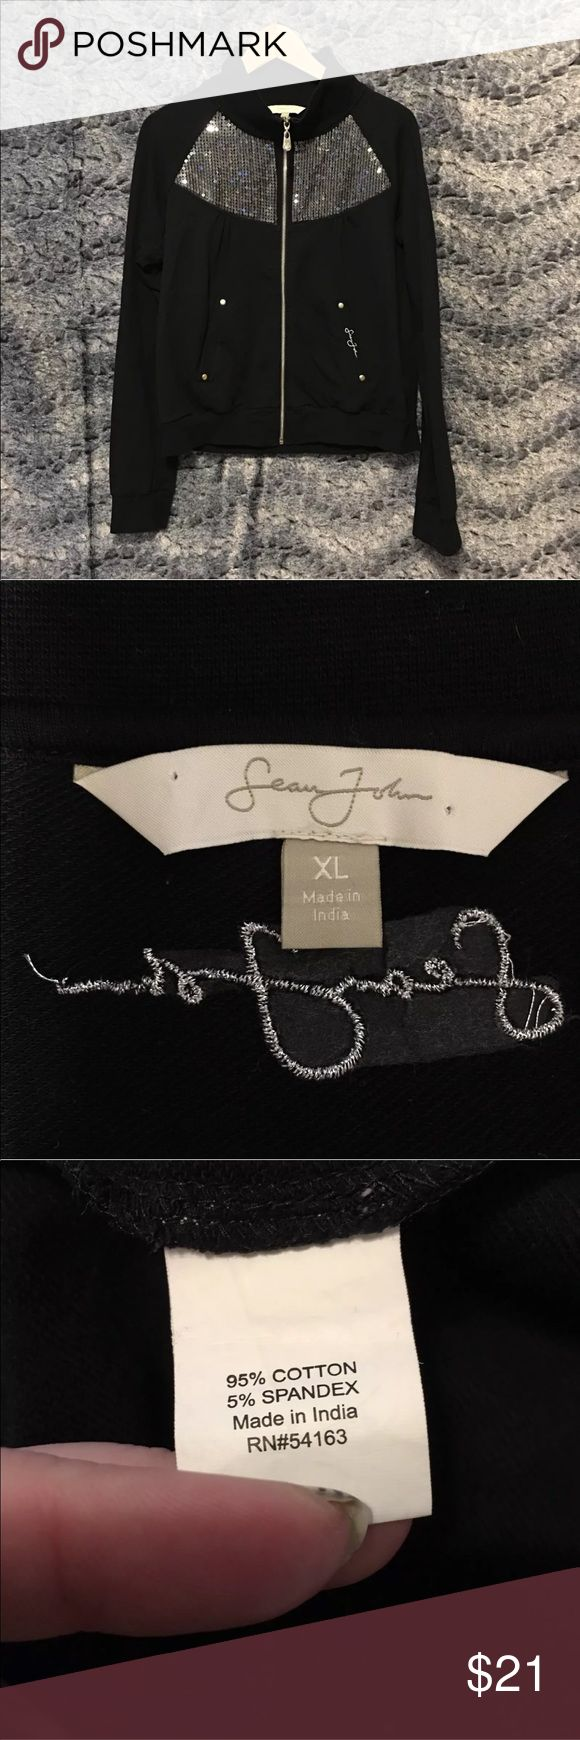 Sean Jean Women's Jacket Size XL Black Sequin JLO Sean Jean US Women's XL The jacket has clear but reflective sequins. There are 4-5 sequins missing but it is not noticeable. The black of the jacket is faded a little. Please look at the measurements!  Shoulder   17 inches from shoulder seam to seam straight across back Sleeve   32 inches from center back of the shirt to the end Length   22.5 inches from the center base of the back of the collar to the end of the shirt Chest   20 inches x 2…